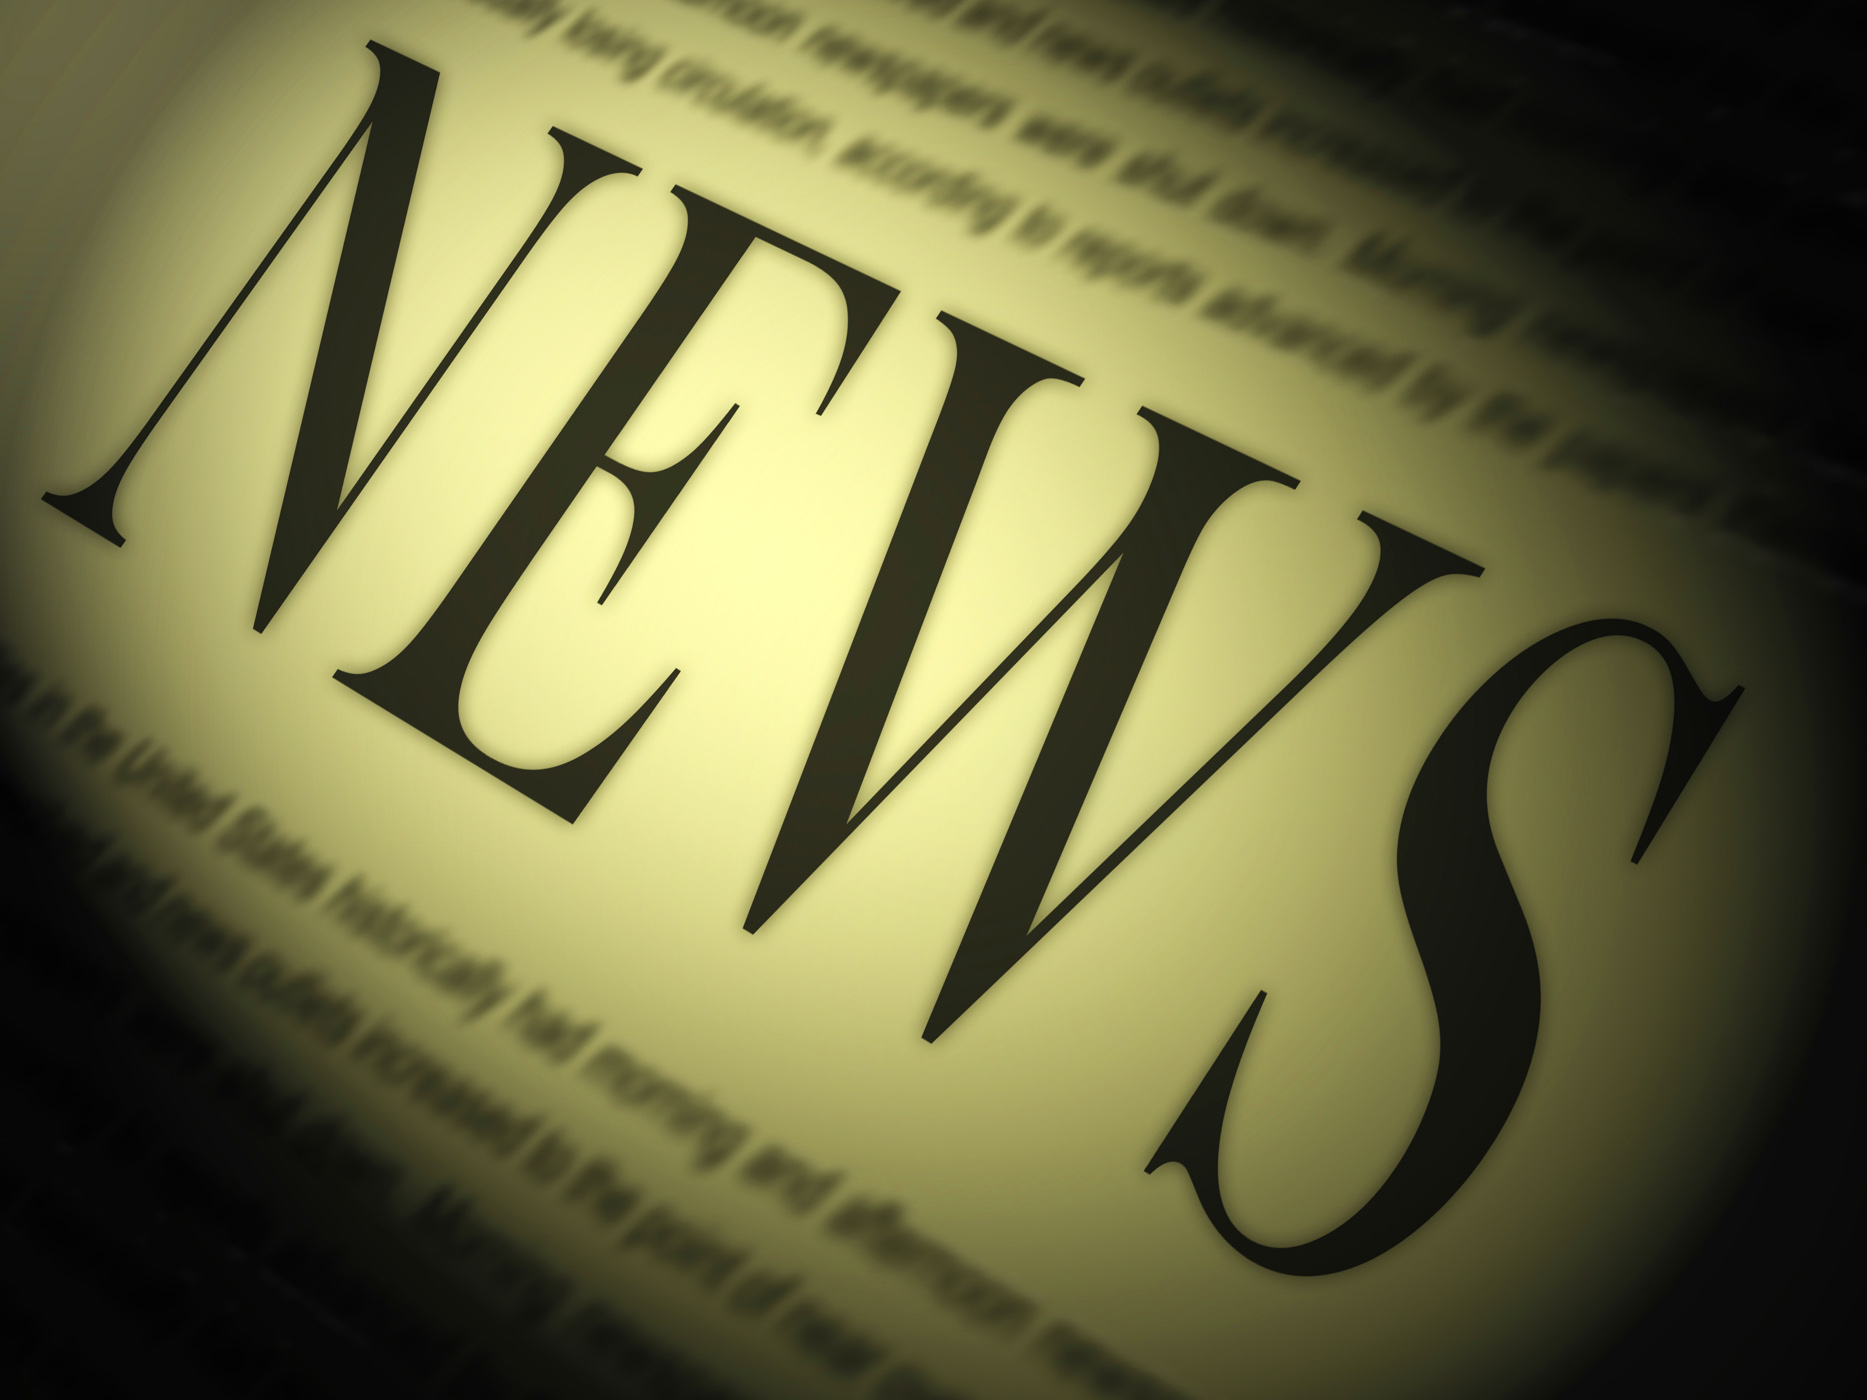 News Paper Shows Media Journalism Newspapers And Headlines, Article, Headlines, Info, Information, HQ Photo